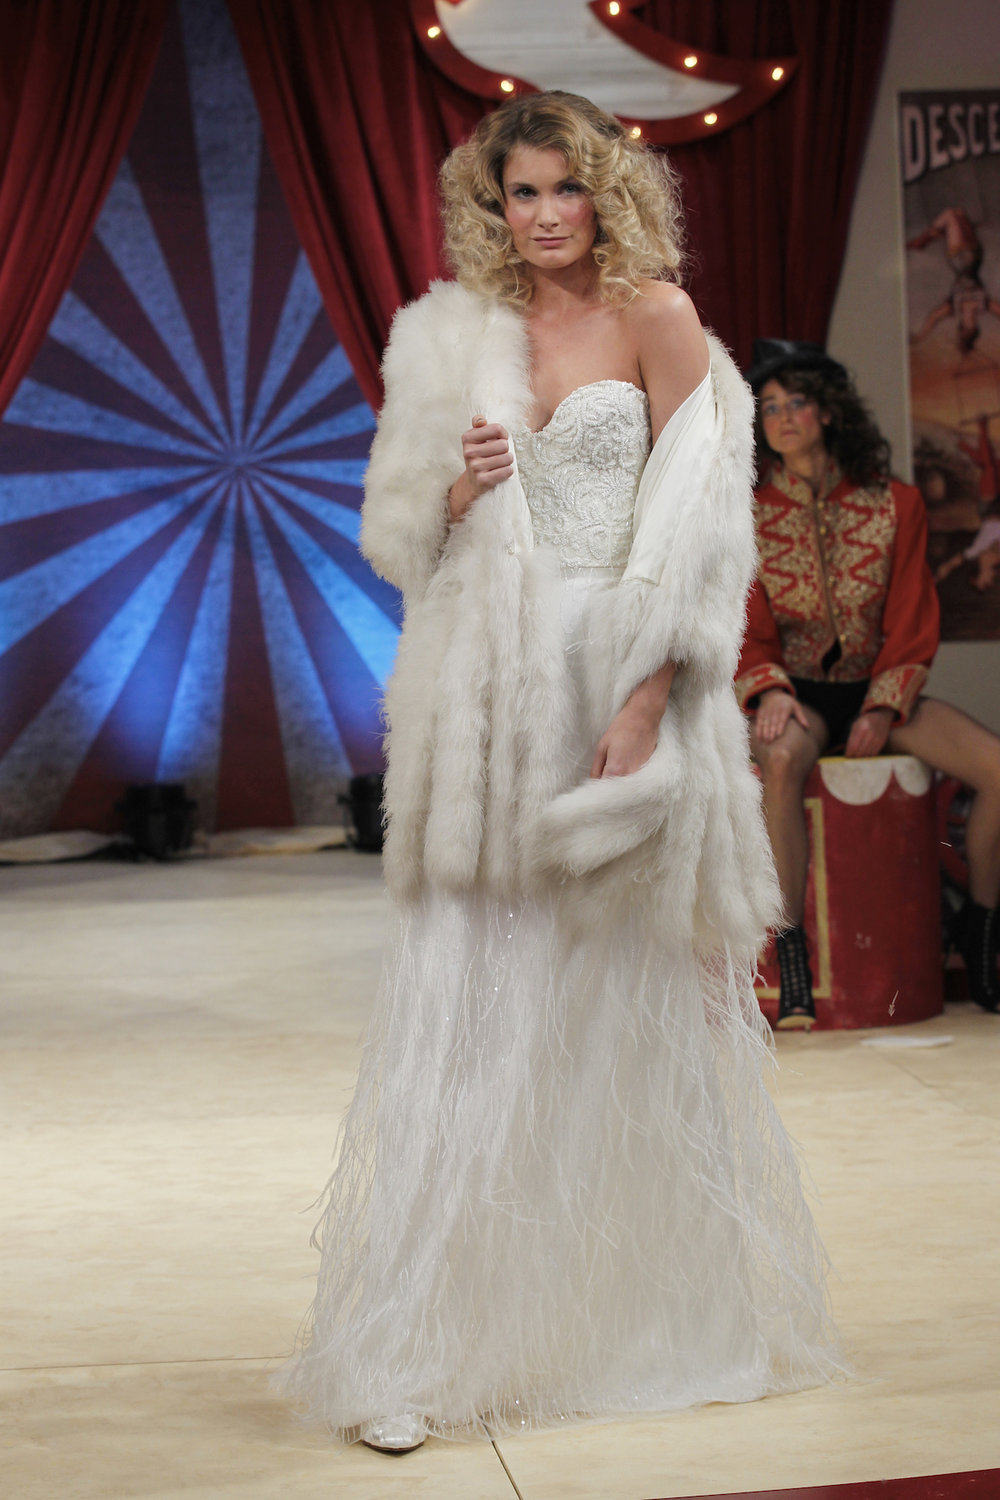 Dita beaded corset & Maribou skirt and jacket | Halfpenny London wedding dress on the Brides the Show catwalk